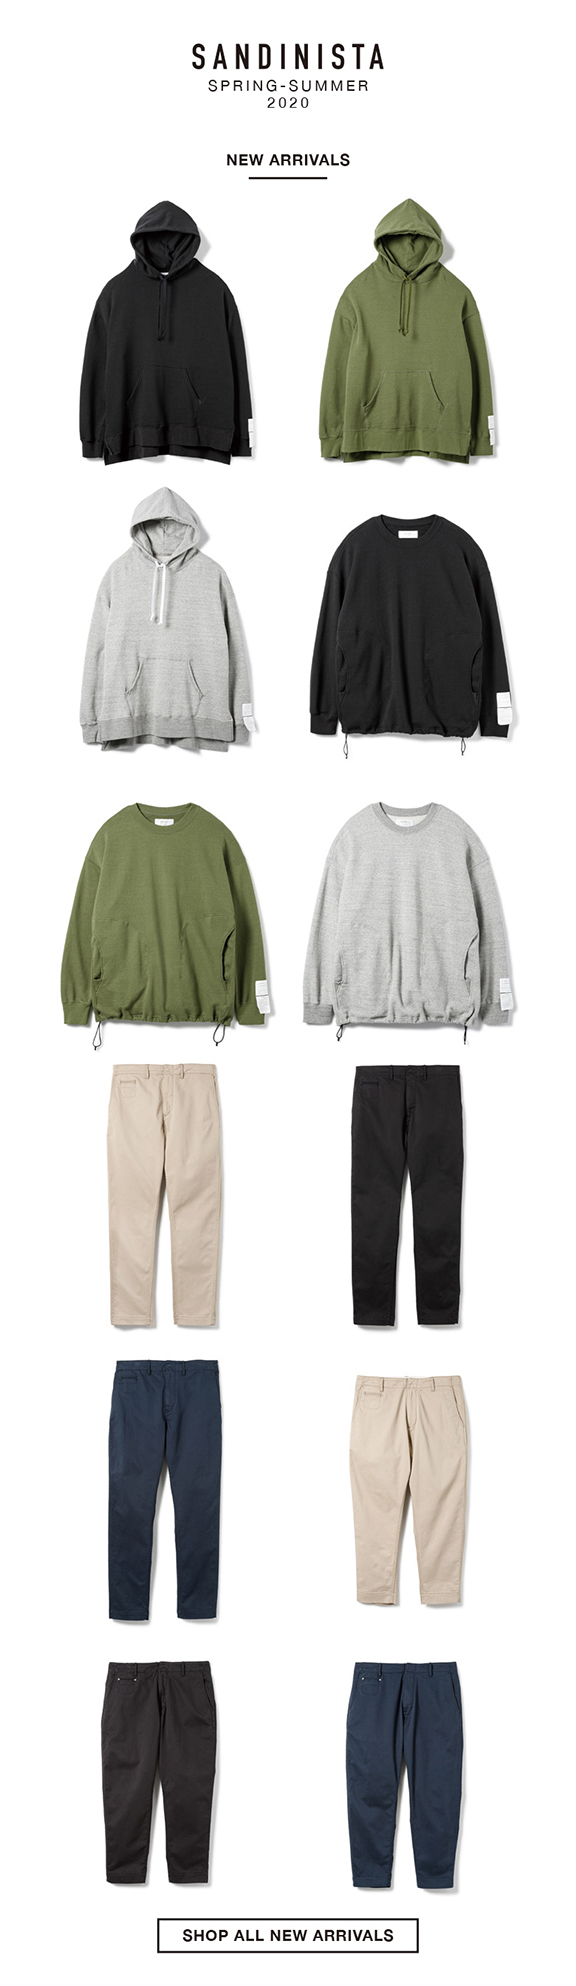 MAIL_NEWARRIVALS_SS20_2020.4.4_576